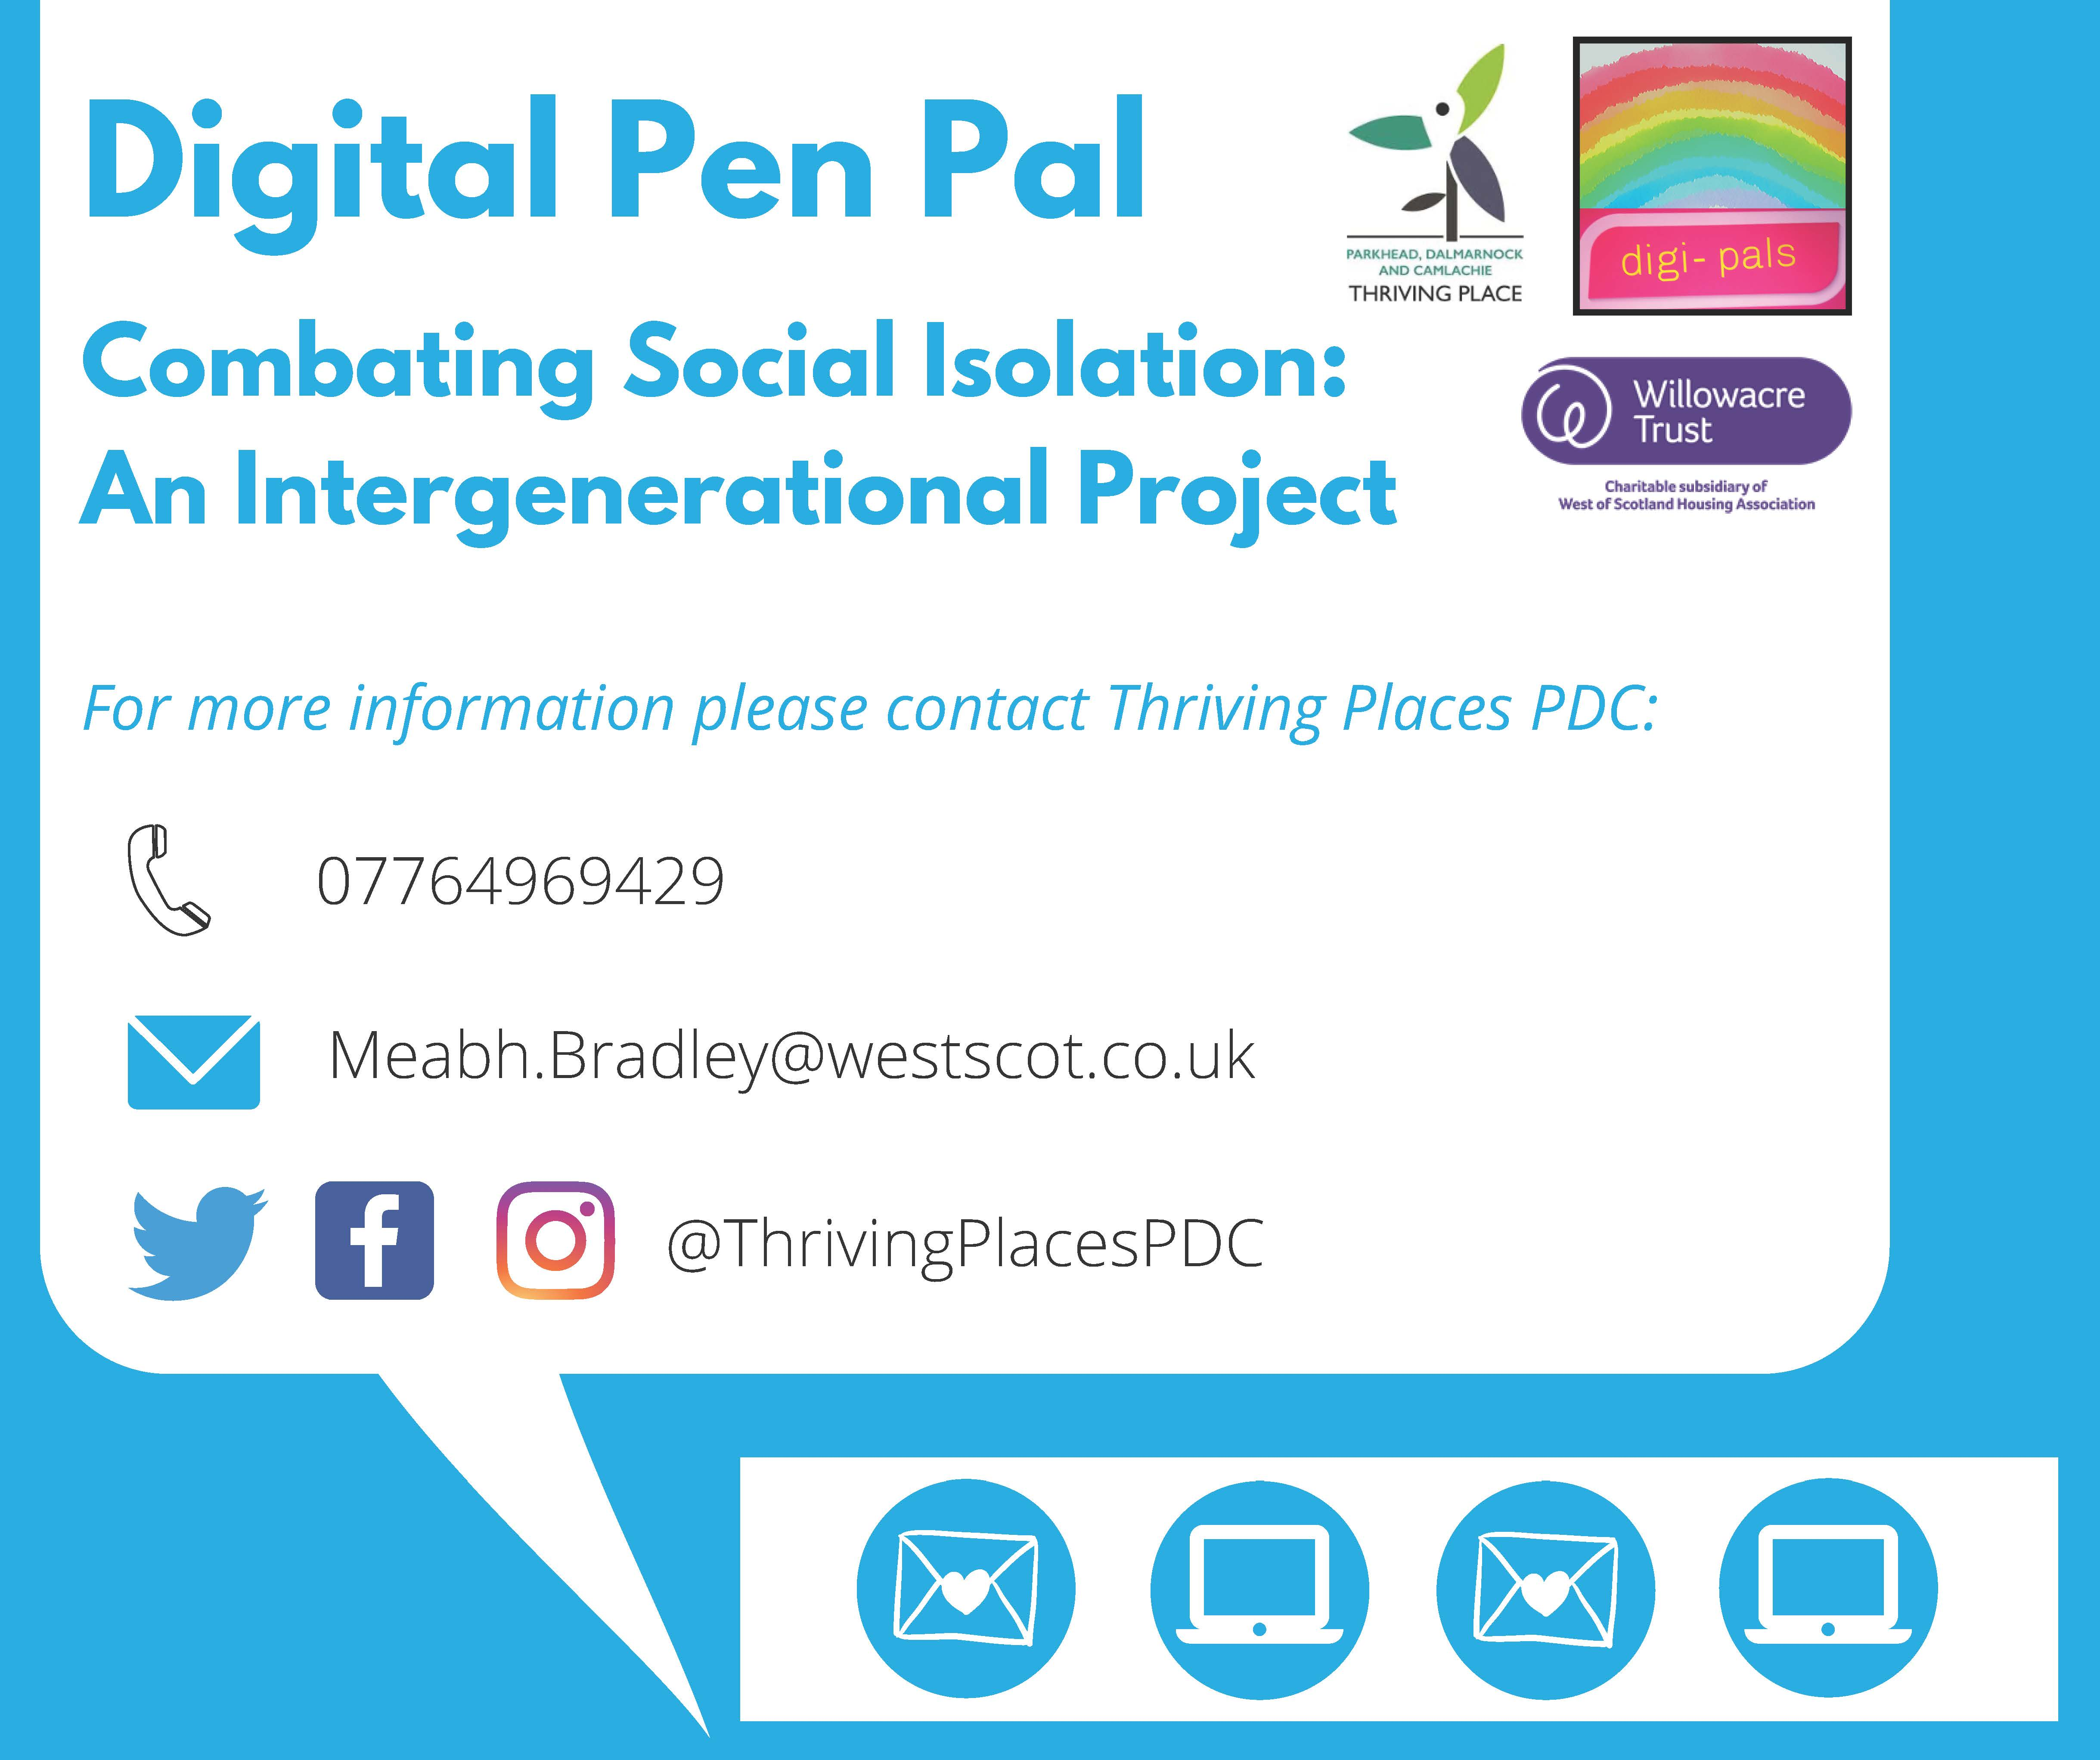 Digital Pen Pals Project information